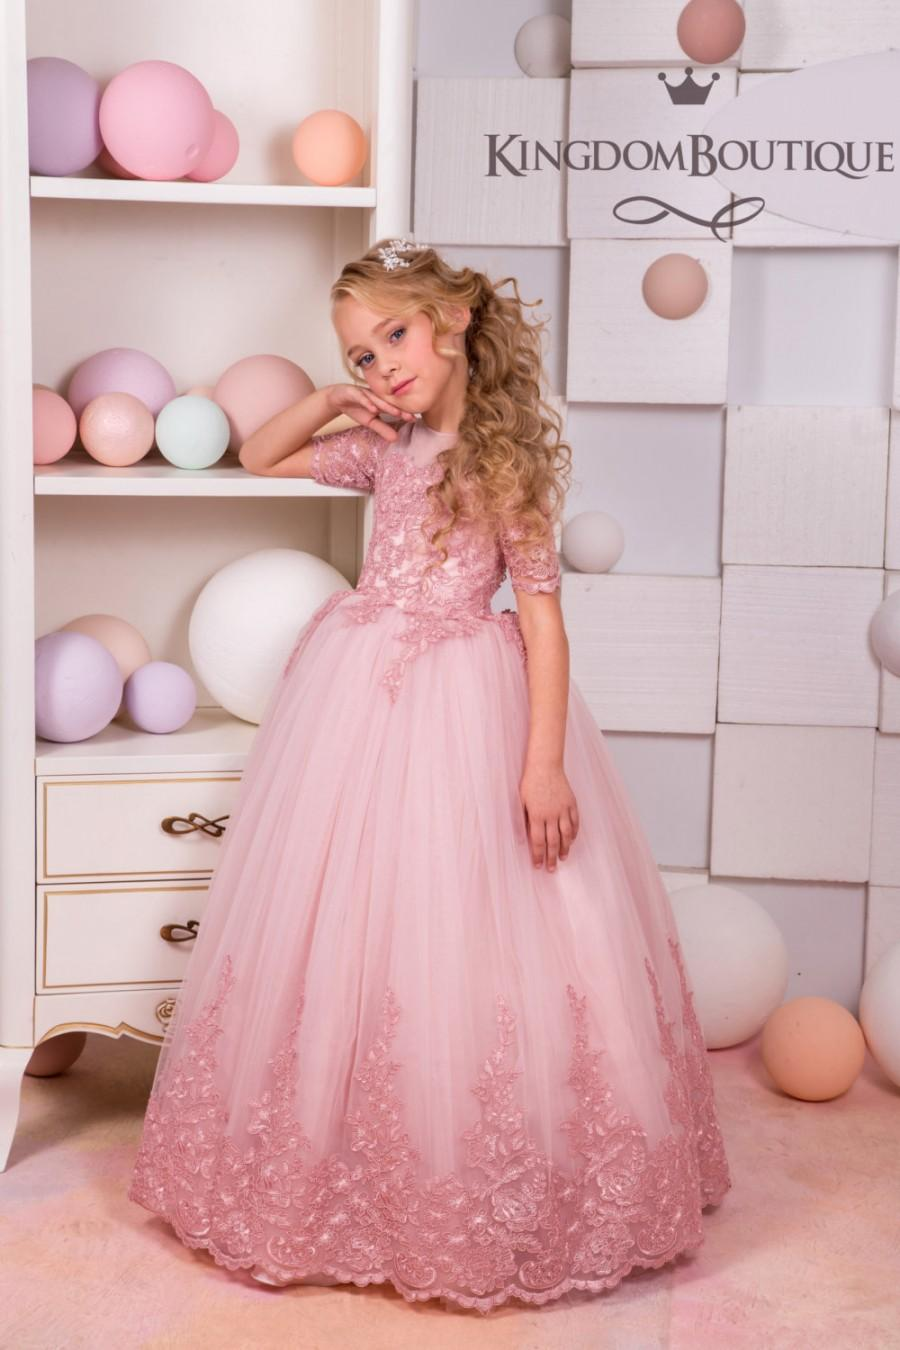 Wedding - Blush Pink Lace Tulle Flower Girl Dress - Wedding party Holiday Bridesmaid Birthday Blush Pink Flower Girl Tulle Lace Dress 15-043